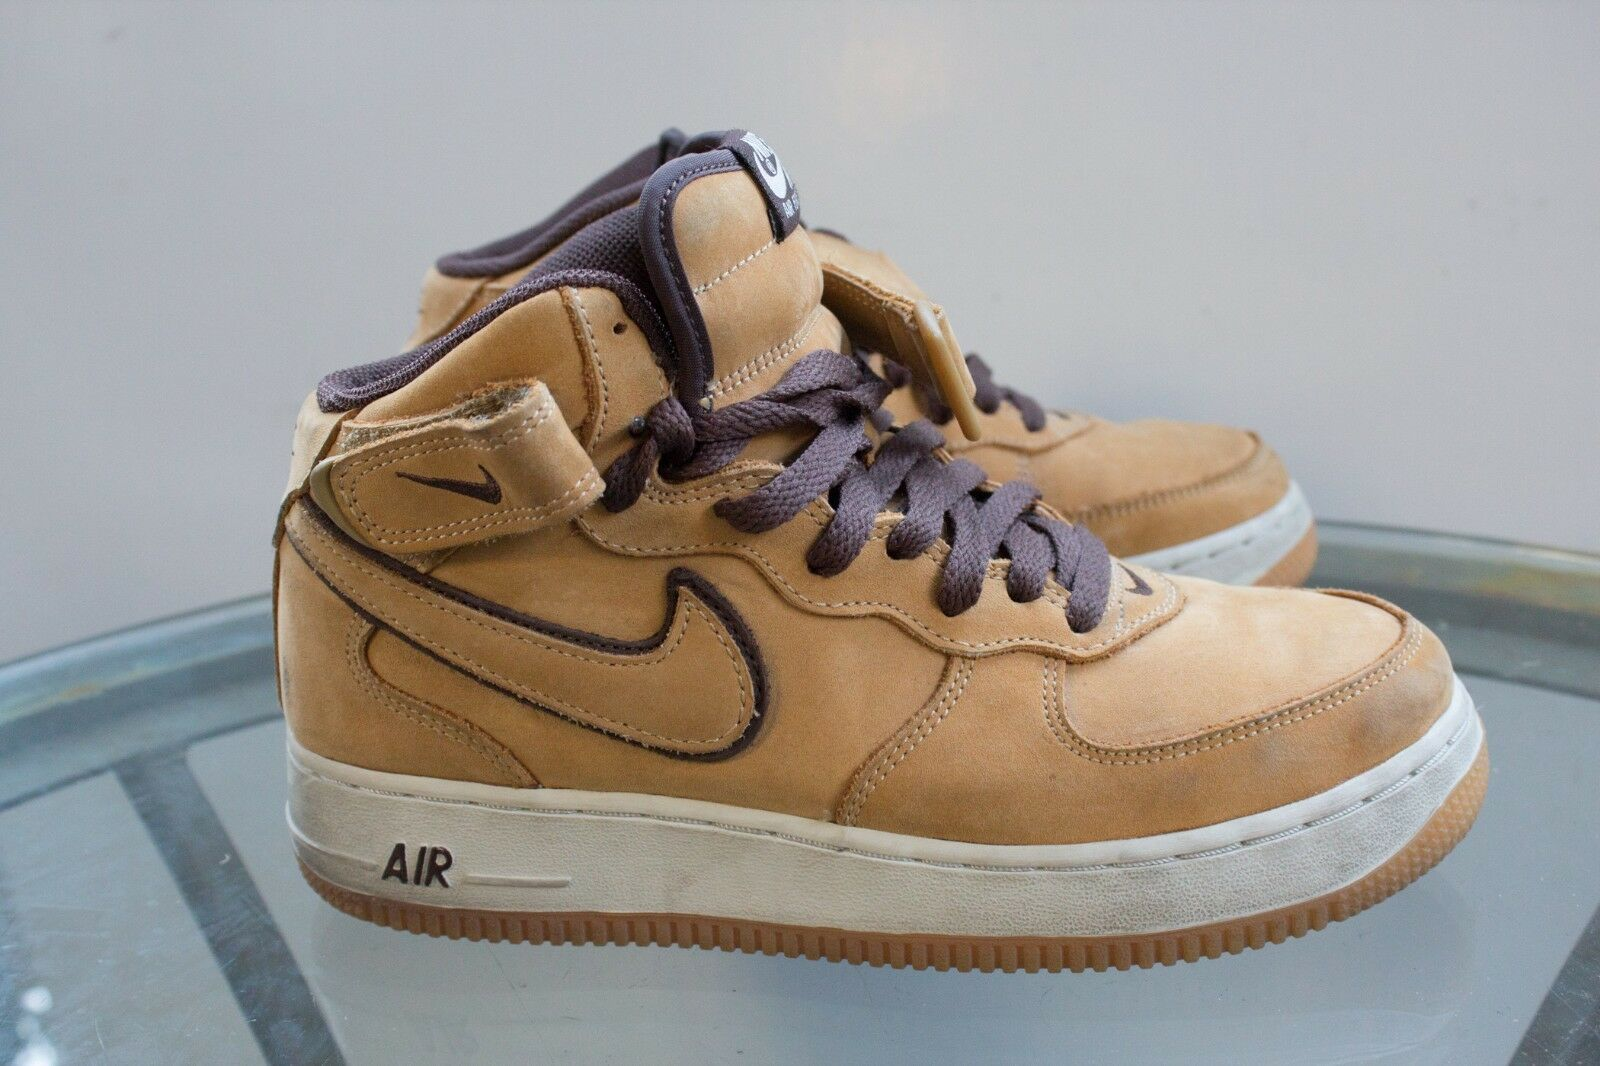 DS 2003 NIKE AIR FORCE 1 MID WP wheat wheat-baroque 307105-771 size 6.5